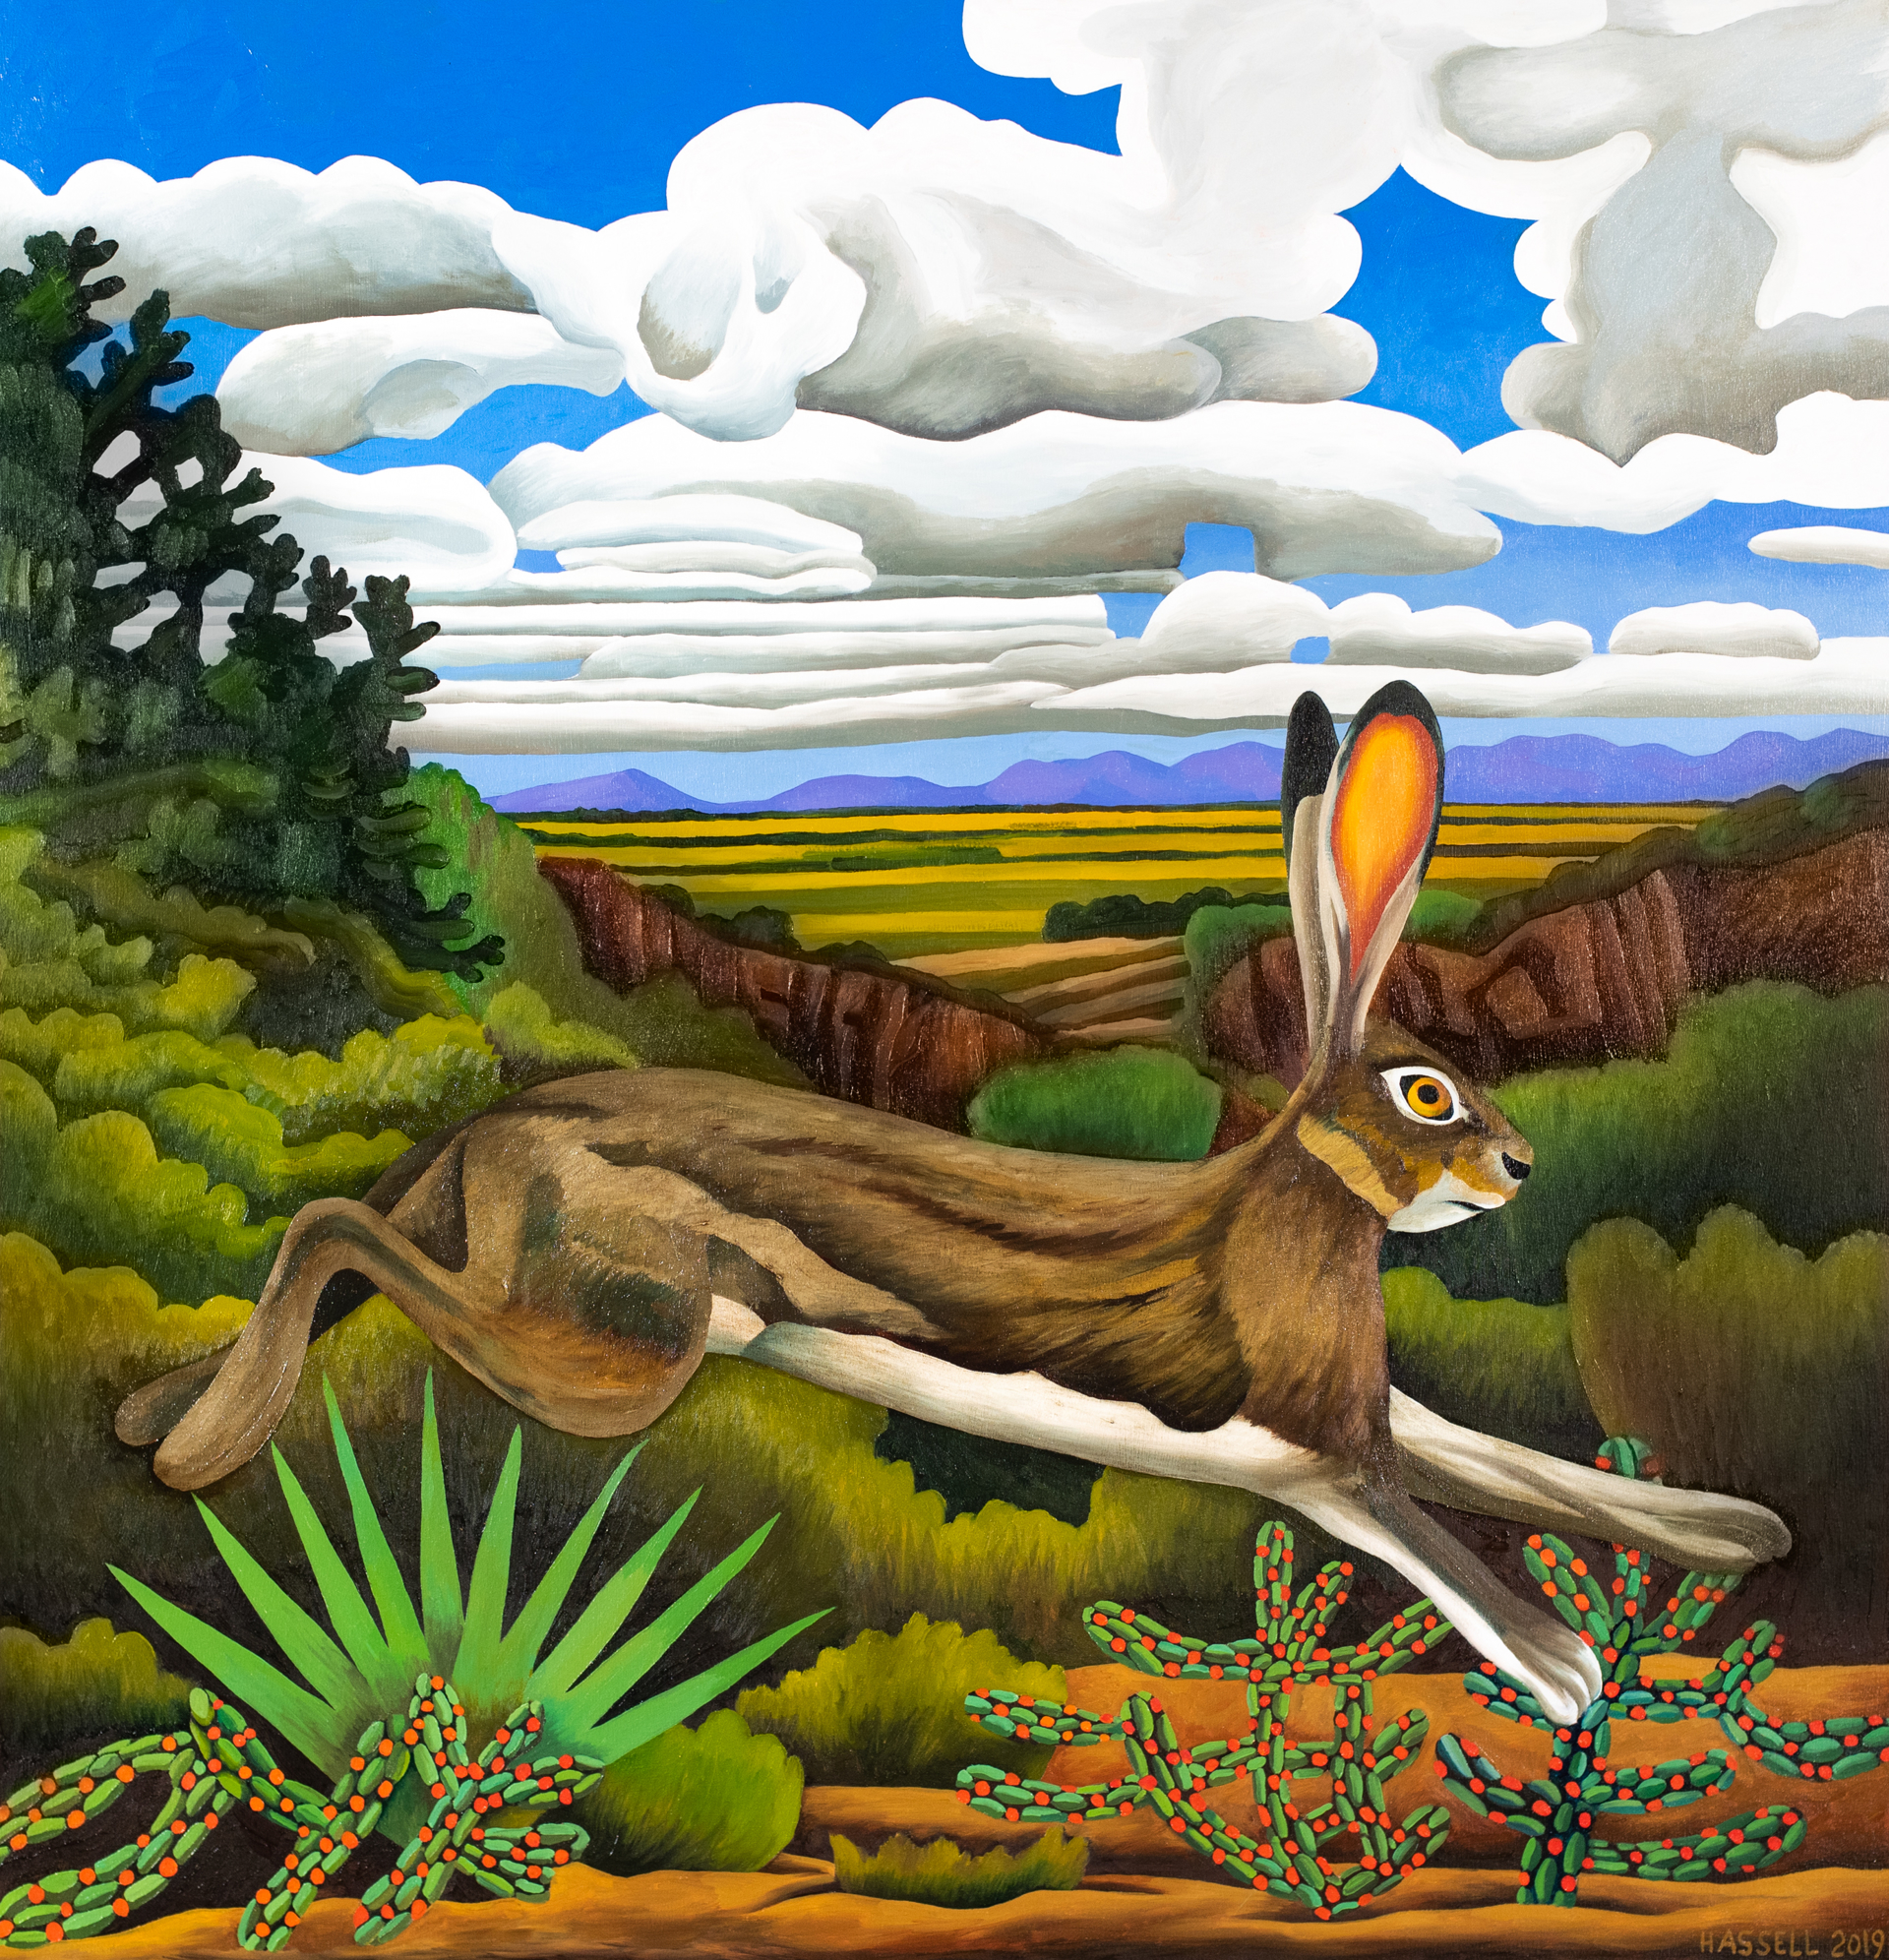 Jackrabbit, West Texas by Billy Hassell